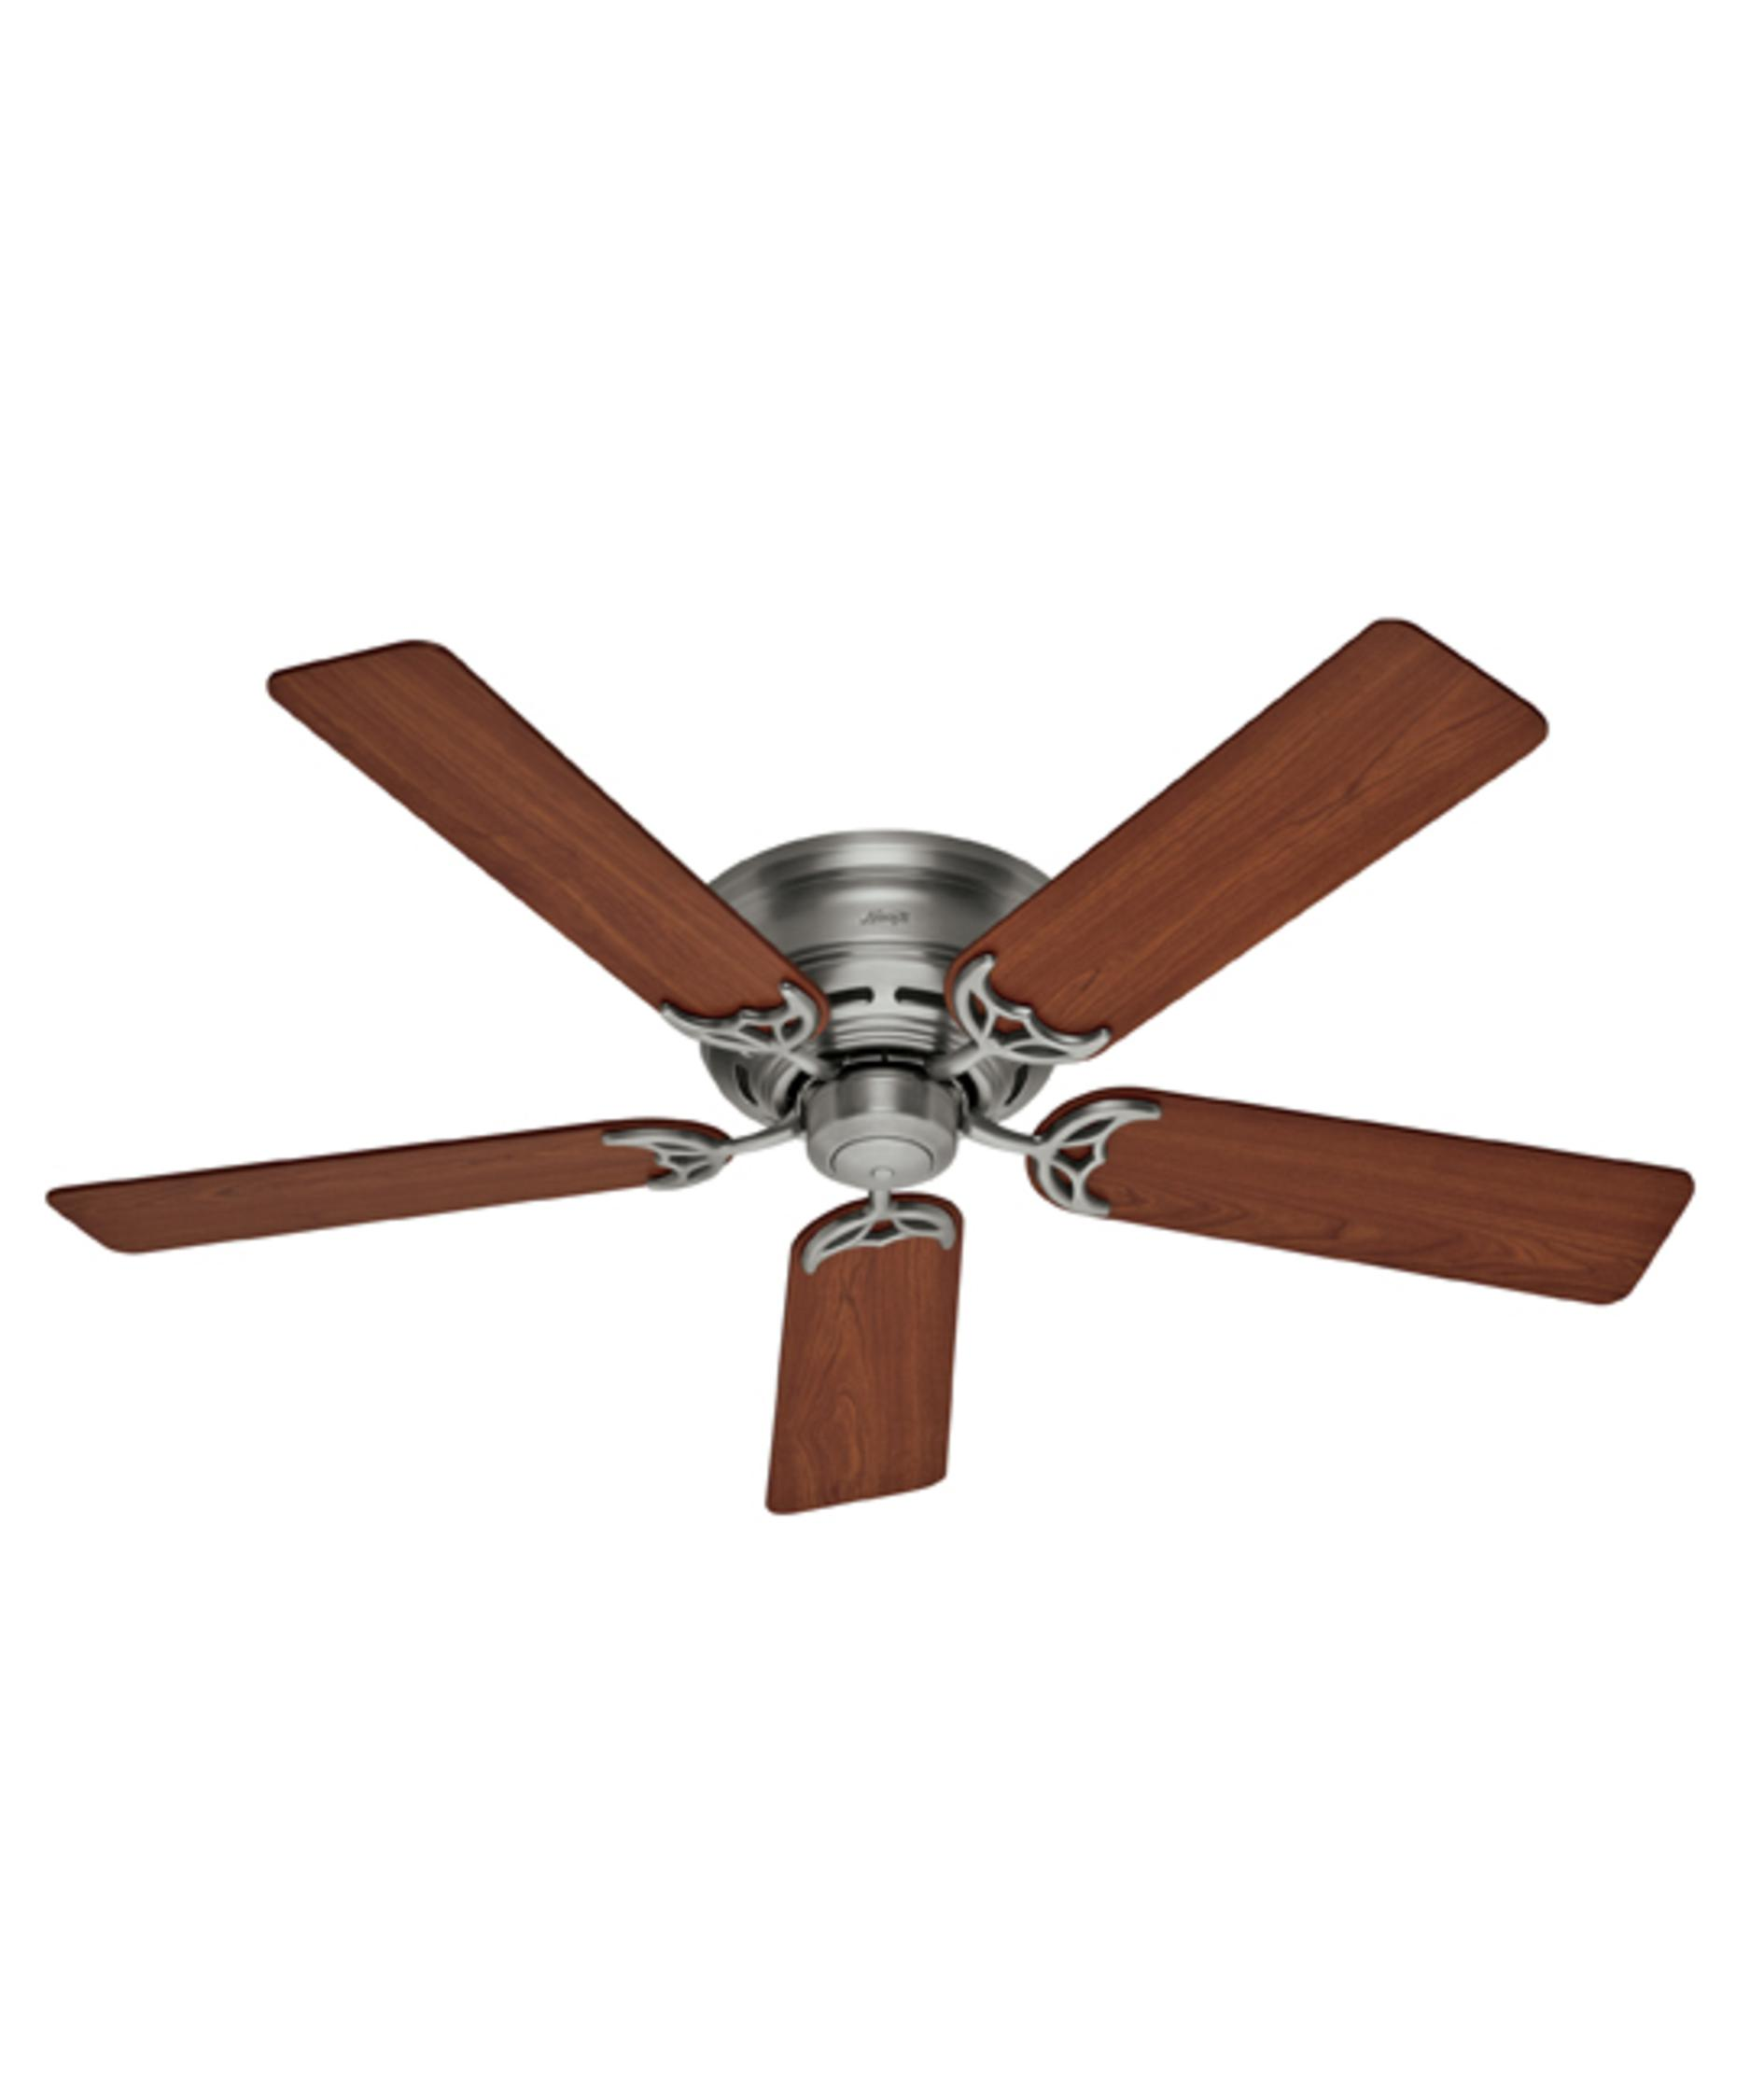 flush mount fans hugger ceiling fans low profile fans. Black Bedroom Furniture Sets. Home Design Ideas